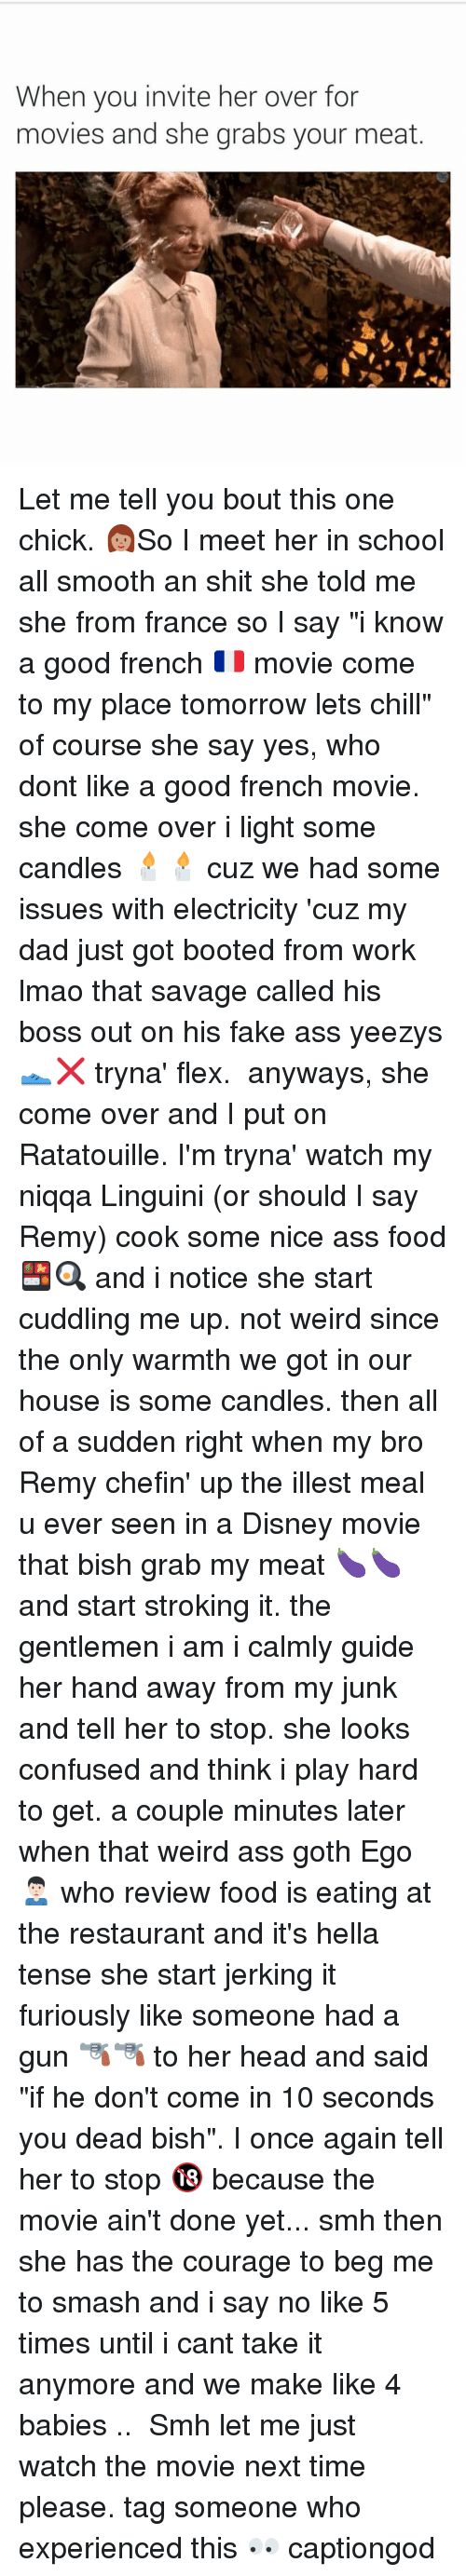 """cant take it anymore: When you invite her over for  movies and she grabs your meat Let me tell you bout this one chick. 👩🏽So I meet her in school all smooth an shit she told me she from france so I say """"i know a good french 🇫🇷 movie come to my place tomorrow lets chill"""" of course she say yes, who dont like a good french movie. she come over i light some candles 🕯🕯 cuz we had some issues with electricity 'cuz my dad just got booted from work lmao that savage called his boss out on his fake ass yeezys 👟❌ tryna' flex. ⠀ anyways, she come over and I put on Ratatouille. I'm tryna' watch my niqqa Linguini (or should I say Remy) cook some nice ass food 🍱🍳 and i notice she start cuddling me up. not weird since the only warmth we got in our house is some candles. then all of a sudden right when my bro Remy chefin' up the illest meal u ever seen in a Disney movie that bish grab my meat 🍆🍆 and start stroking it. the gentlemen i am i calmly guide her hand away from my junk and tell her to stop. she looks confused and think i play hard to get. a couple minutes later when that weird ass goth Ego 🙍🏻♂️ who review food is eating at the restaurant and it's hella tense she start jerking it furiously like someone had a gun 🔫🔫 to her head and said """"if he don't come in 10 seconds you dead bish"""". I once again tell her to stop 🔞 because the movie ain't done yet... smh then she has the courage to beg me to smash and i say no like 5 times until i cant take it anymore and we make like 4 babies .. ⠀ Smh let me just watch the movie next time please. tag someone who experienced this 👀 captiongod"""